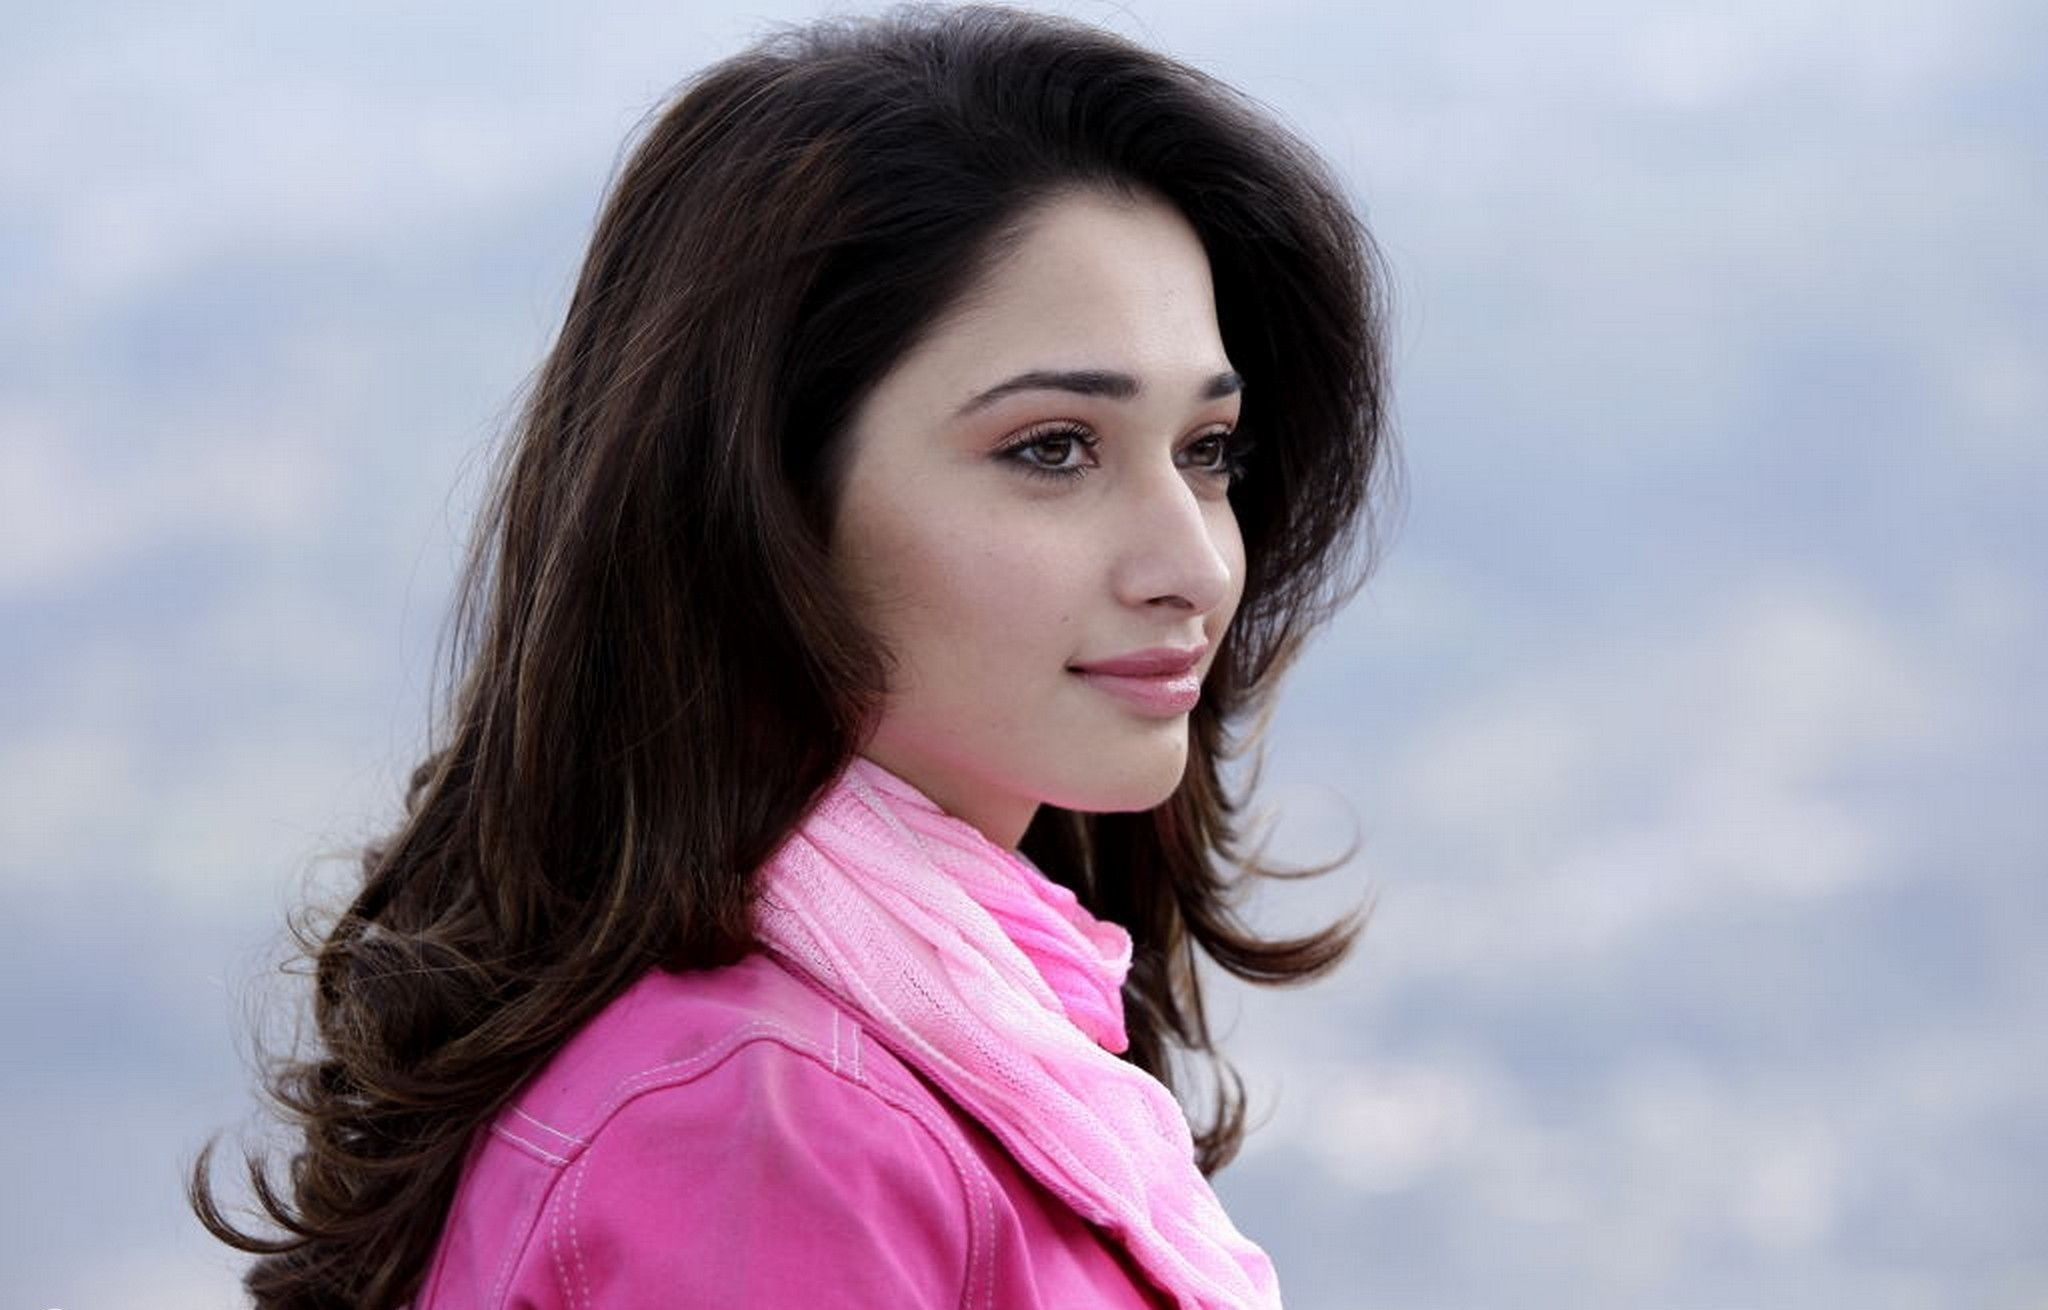 tamanna wallpapers galleries (60+ images)